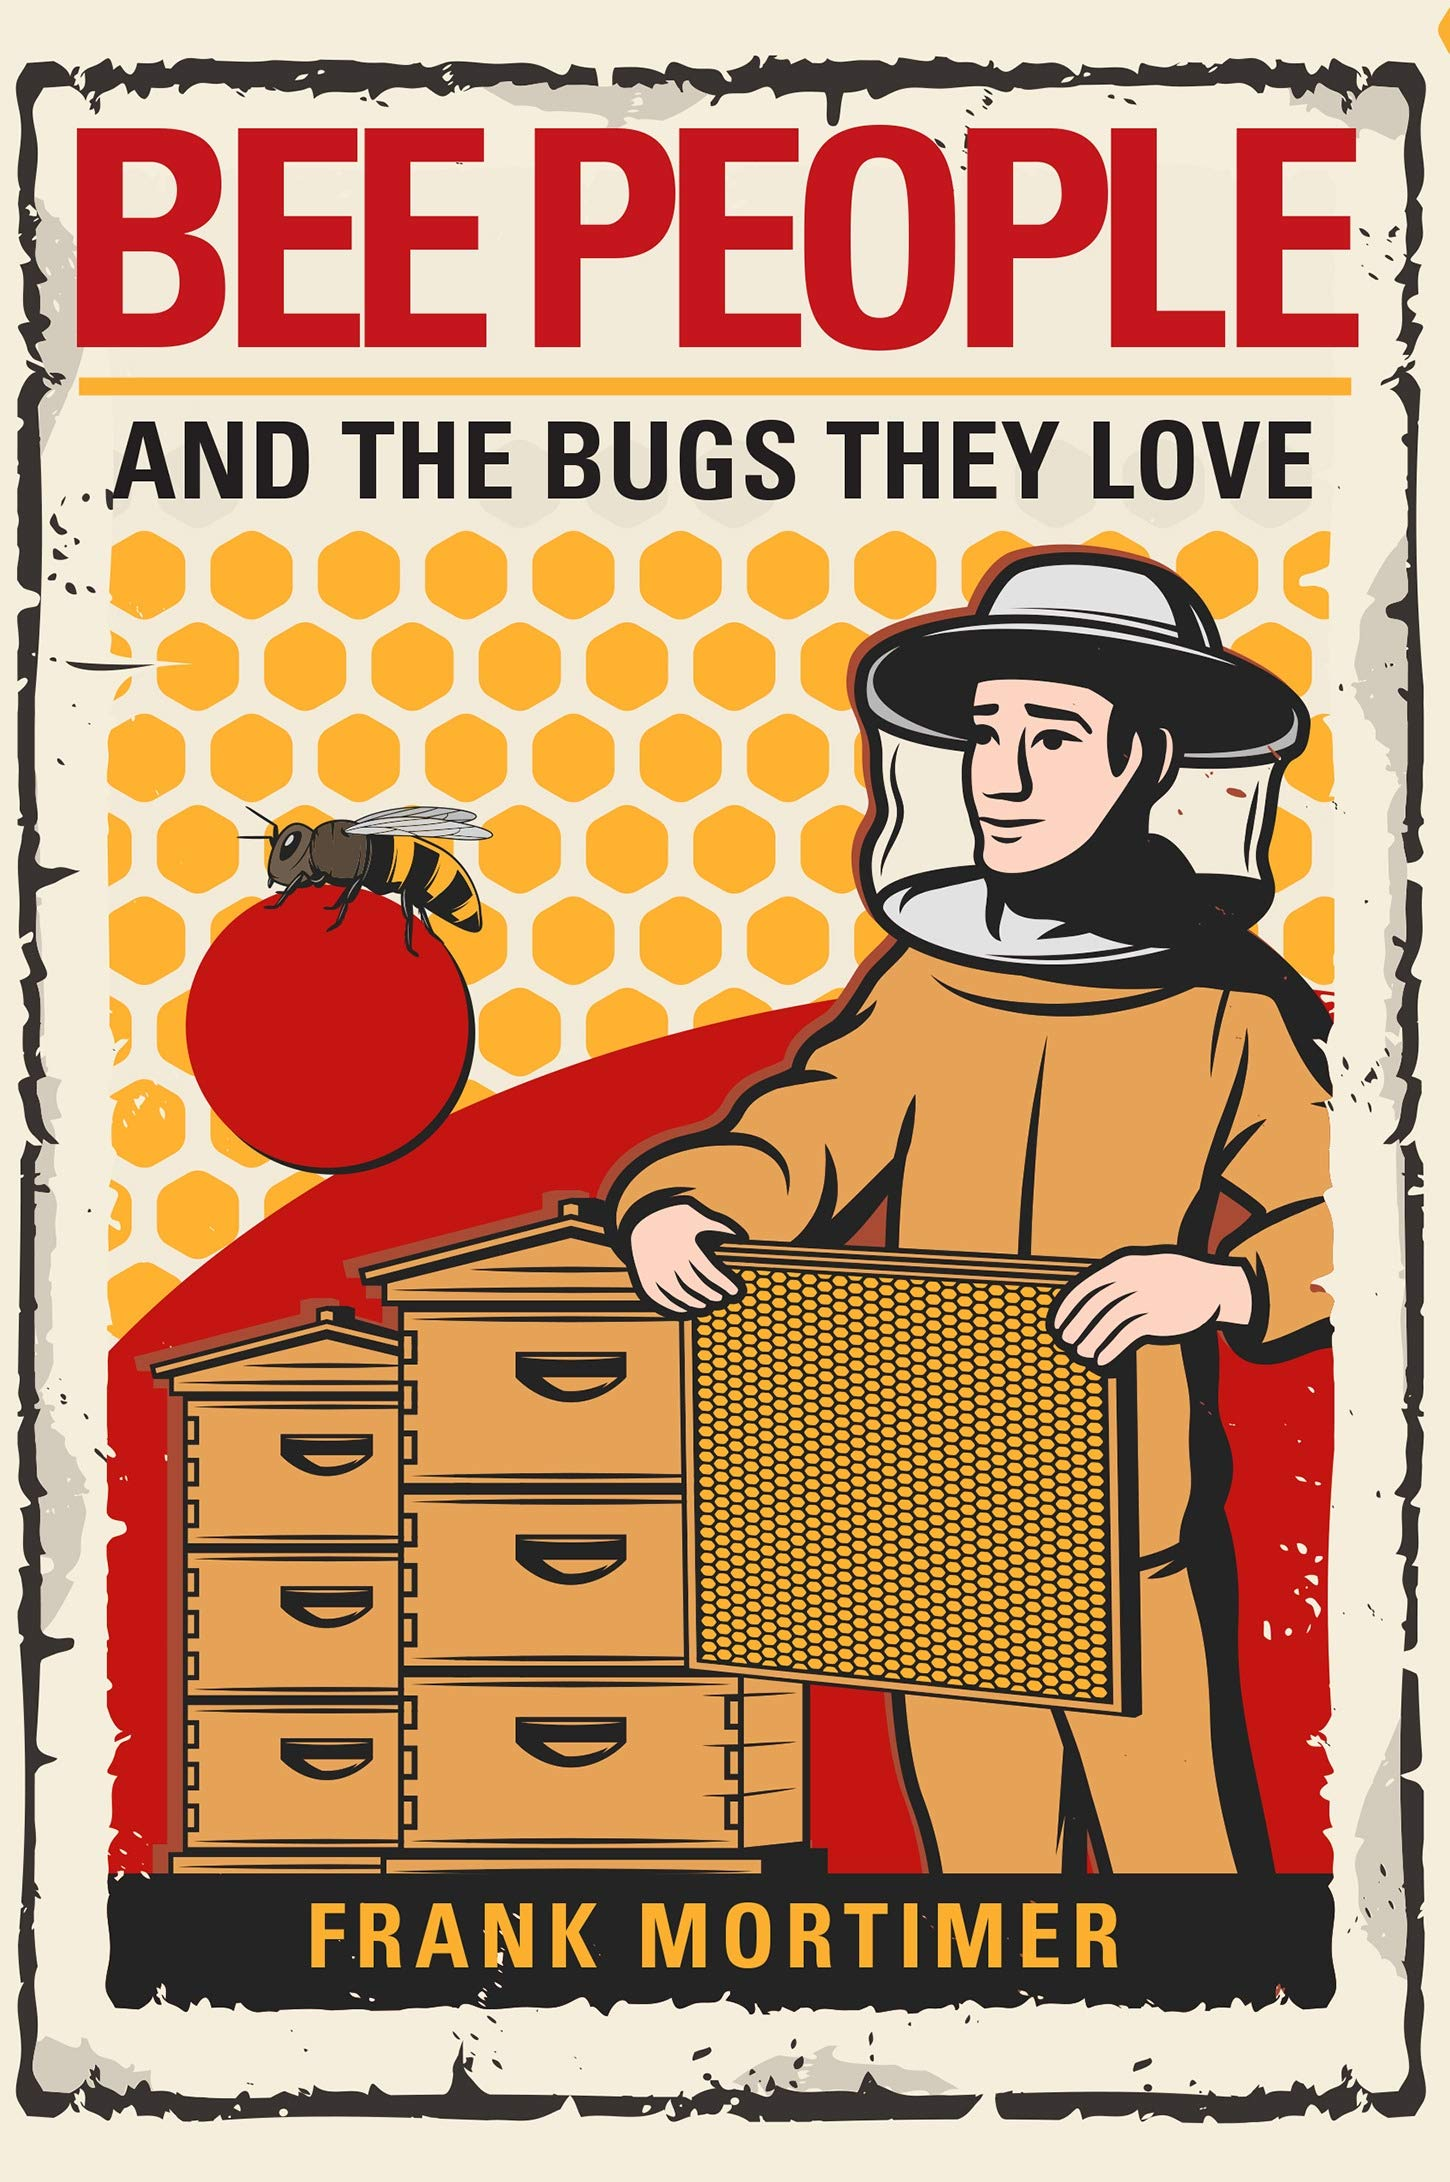 Bee People and the Bugs They Love